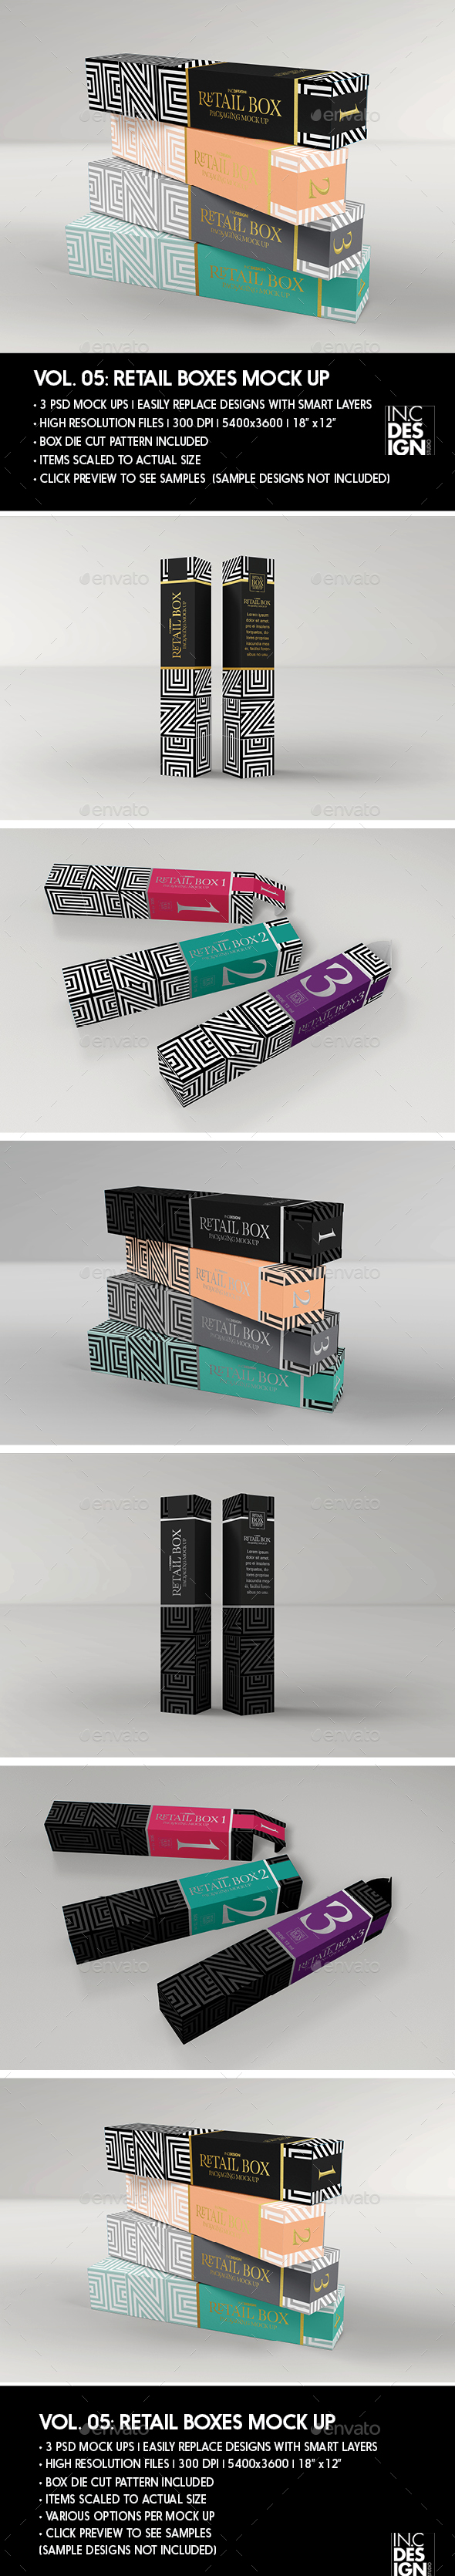 Retail Boxes Vol.5: Narrow Cosmetic or Perfume Box Packaging Mock Ups - Beauty Packaging